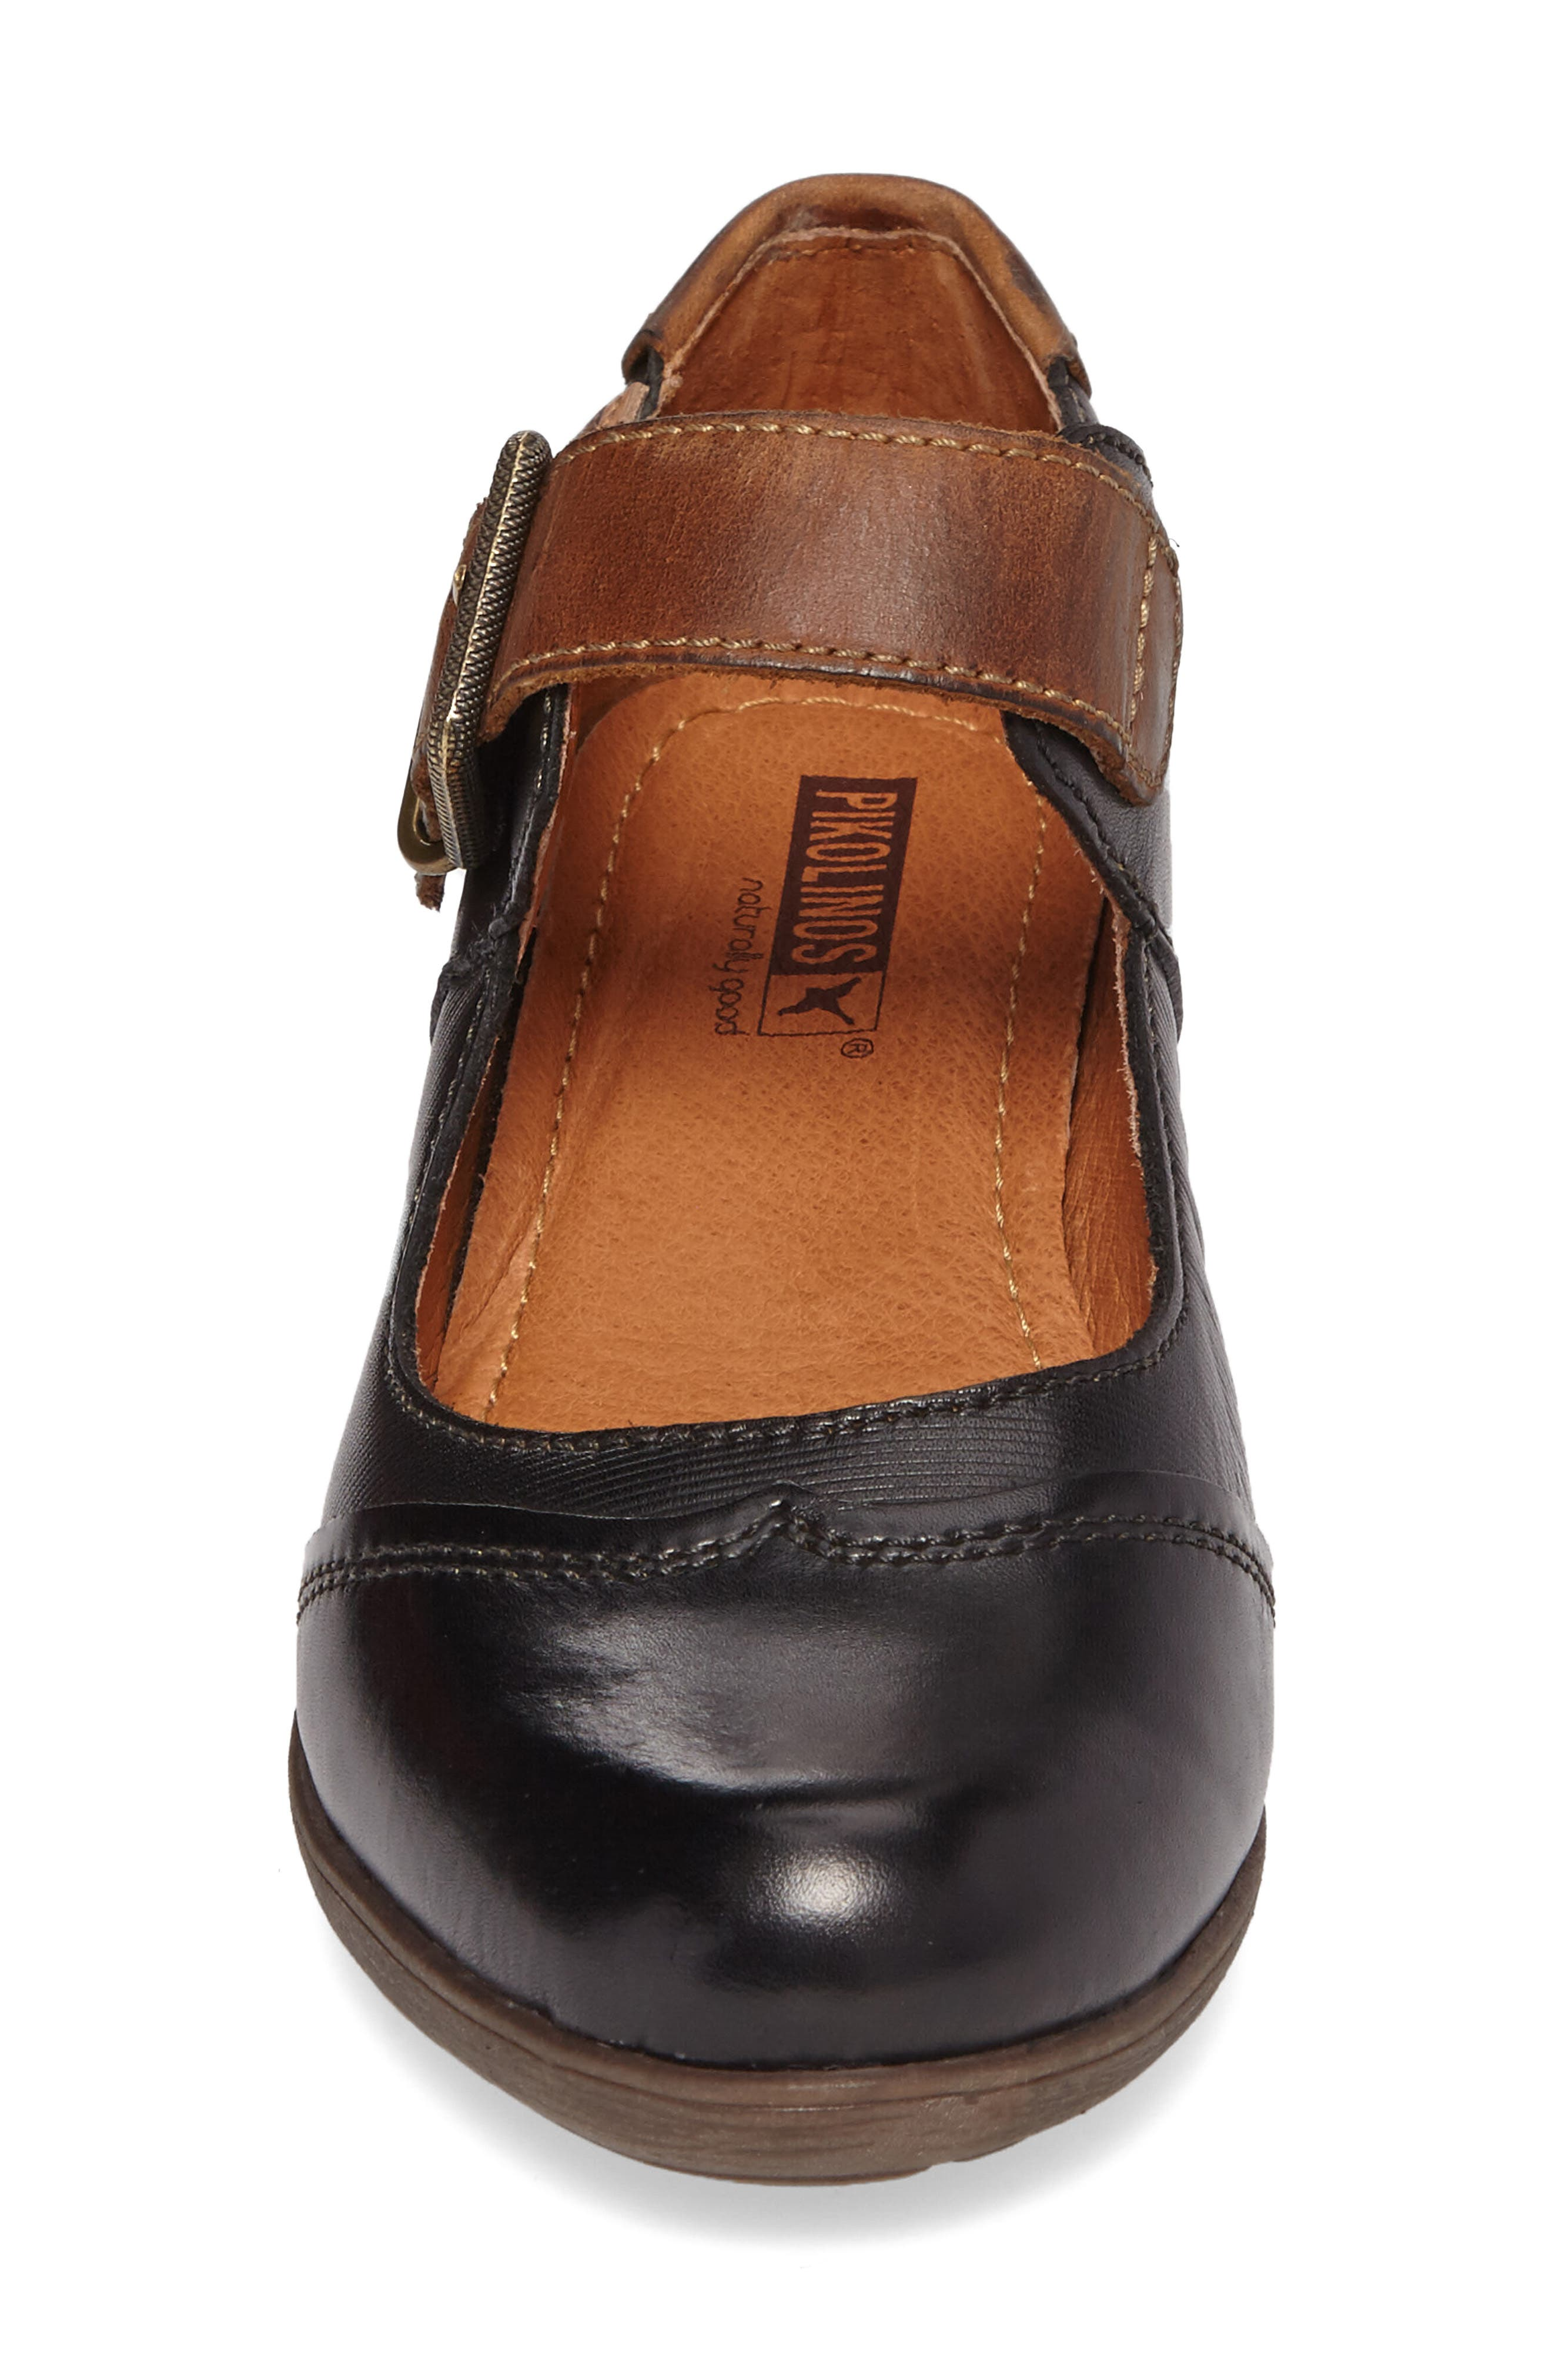 Rotterdam Water Resistant Mary Jane Pump,                             Alternate thumbnail 4, color,                             001